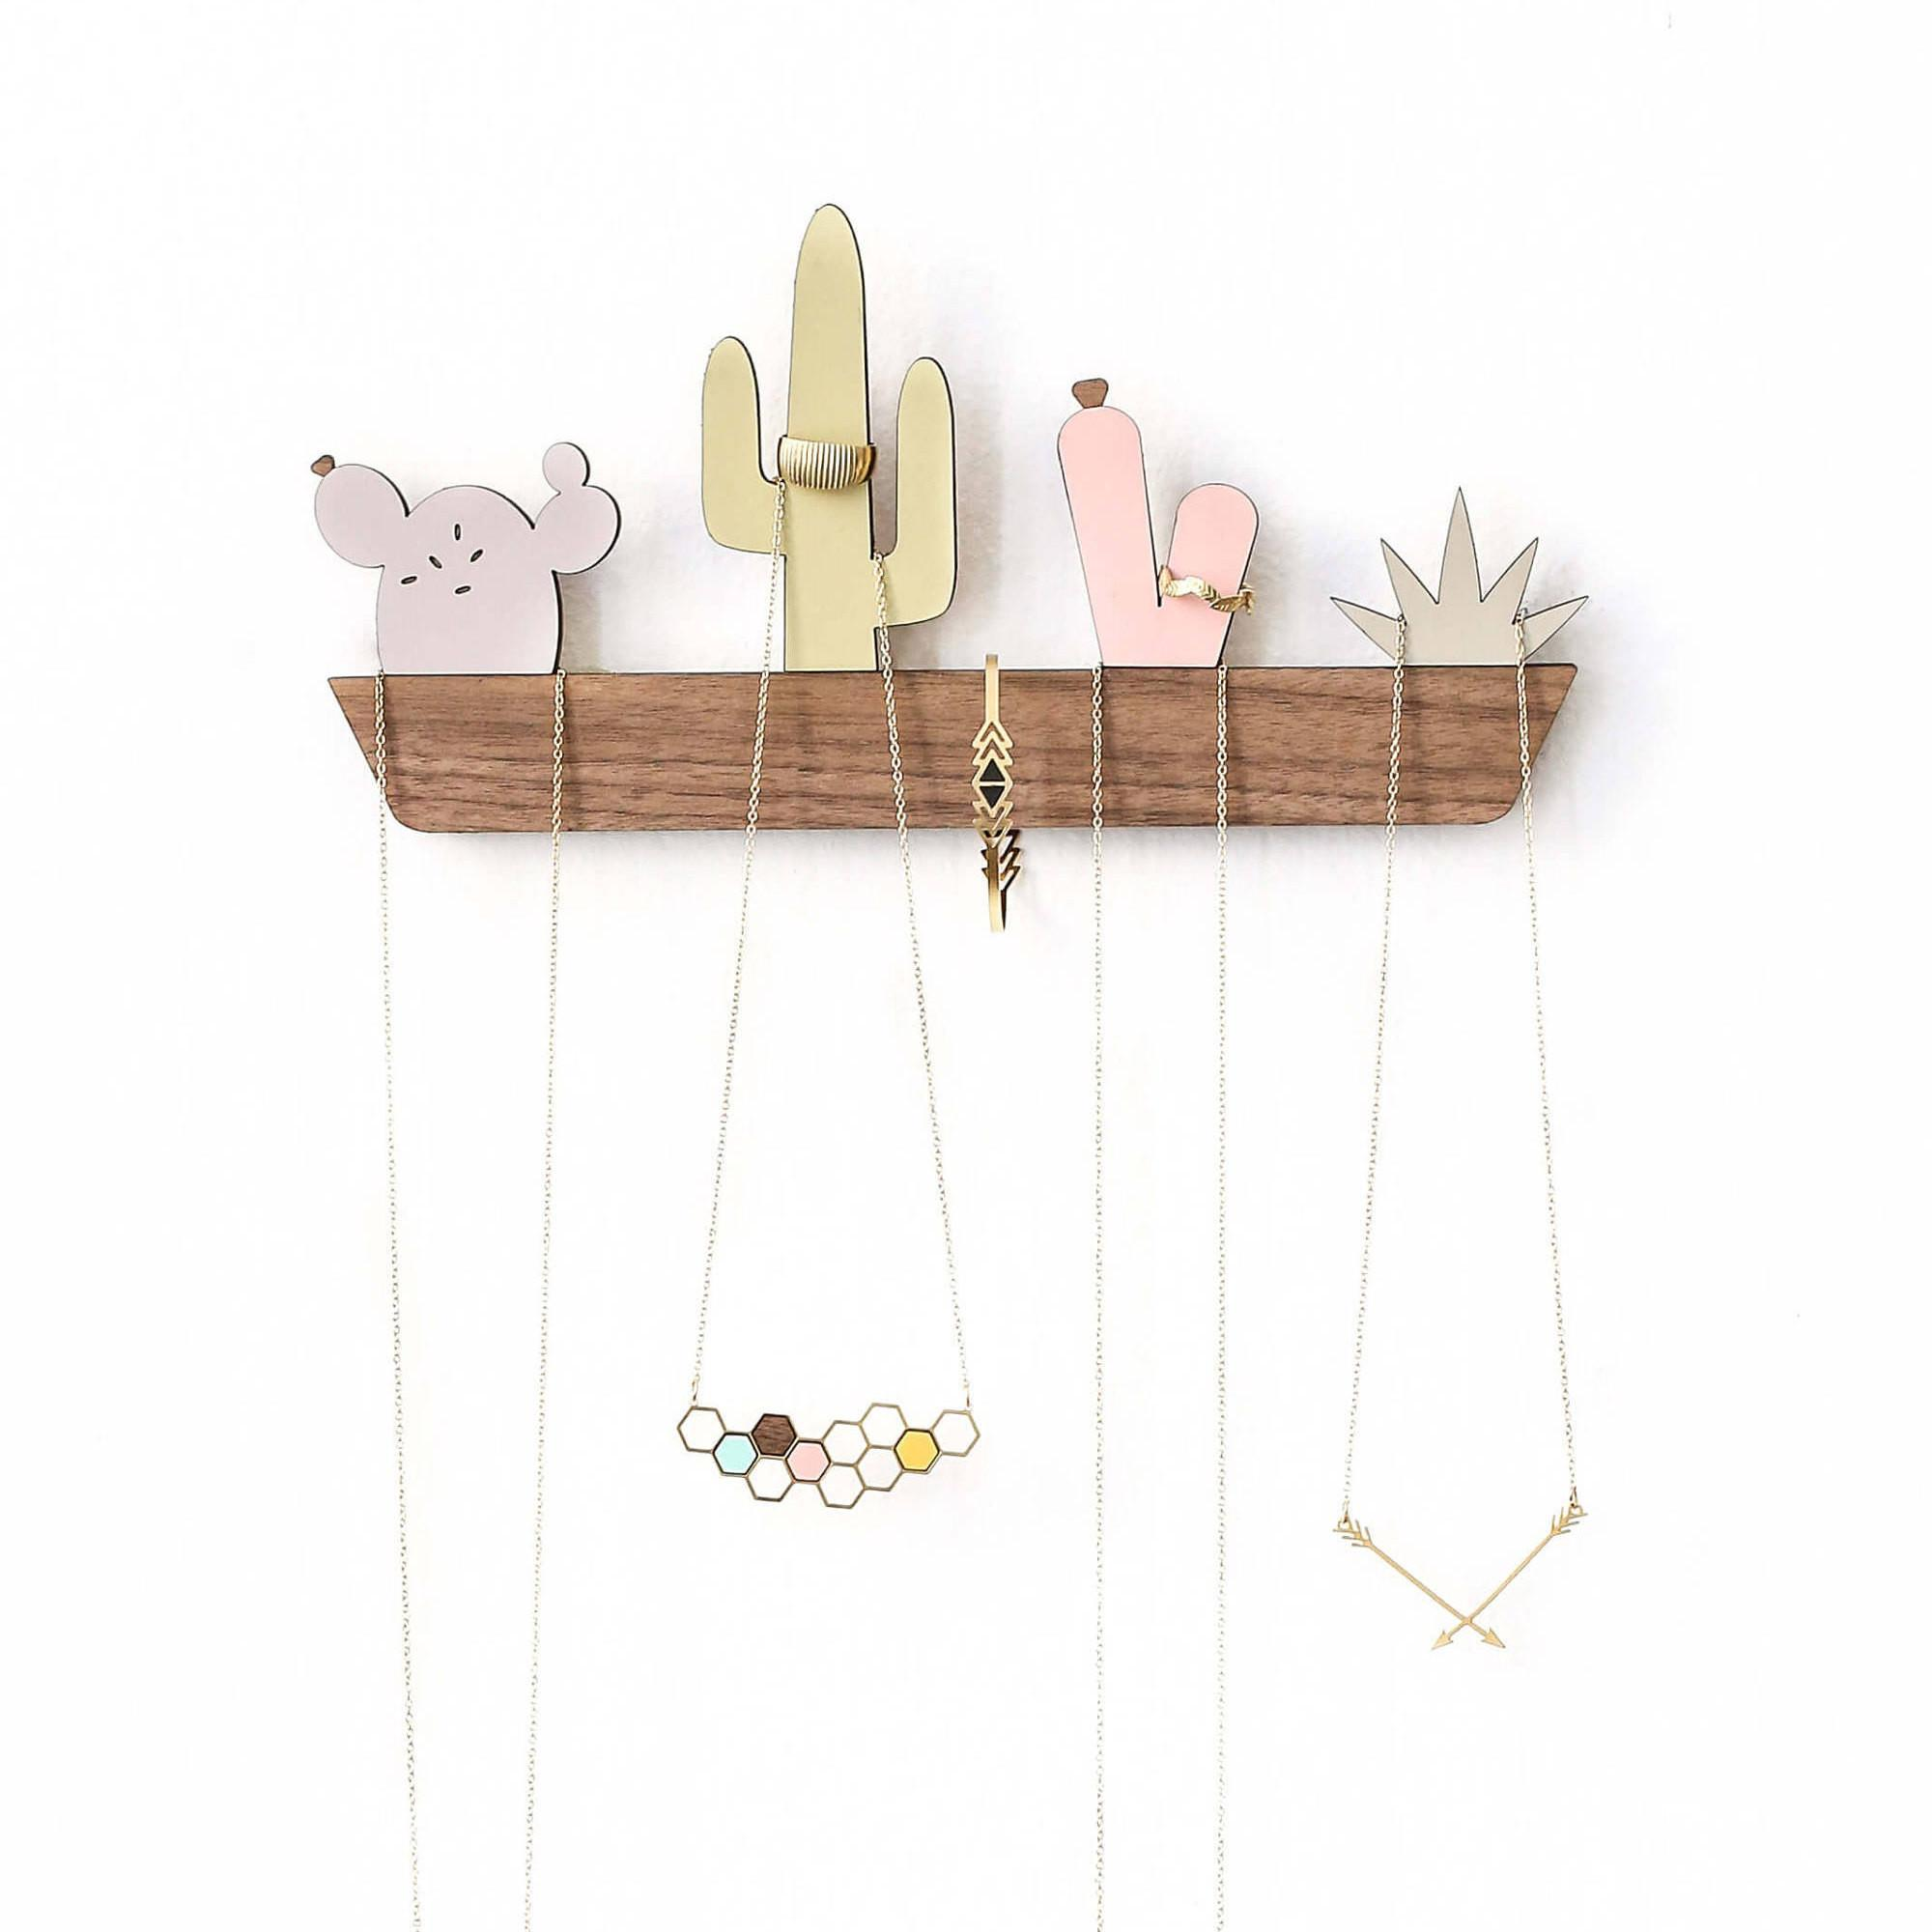 Cactus Window Box Jewelry Display Organizer